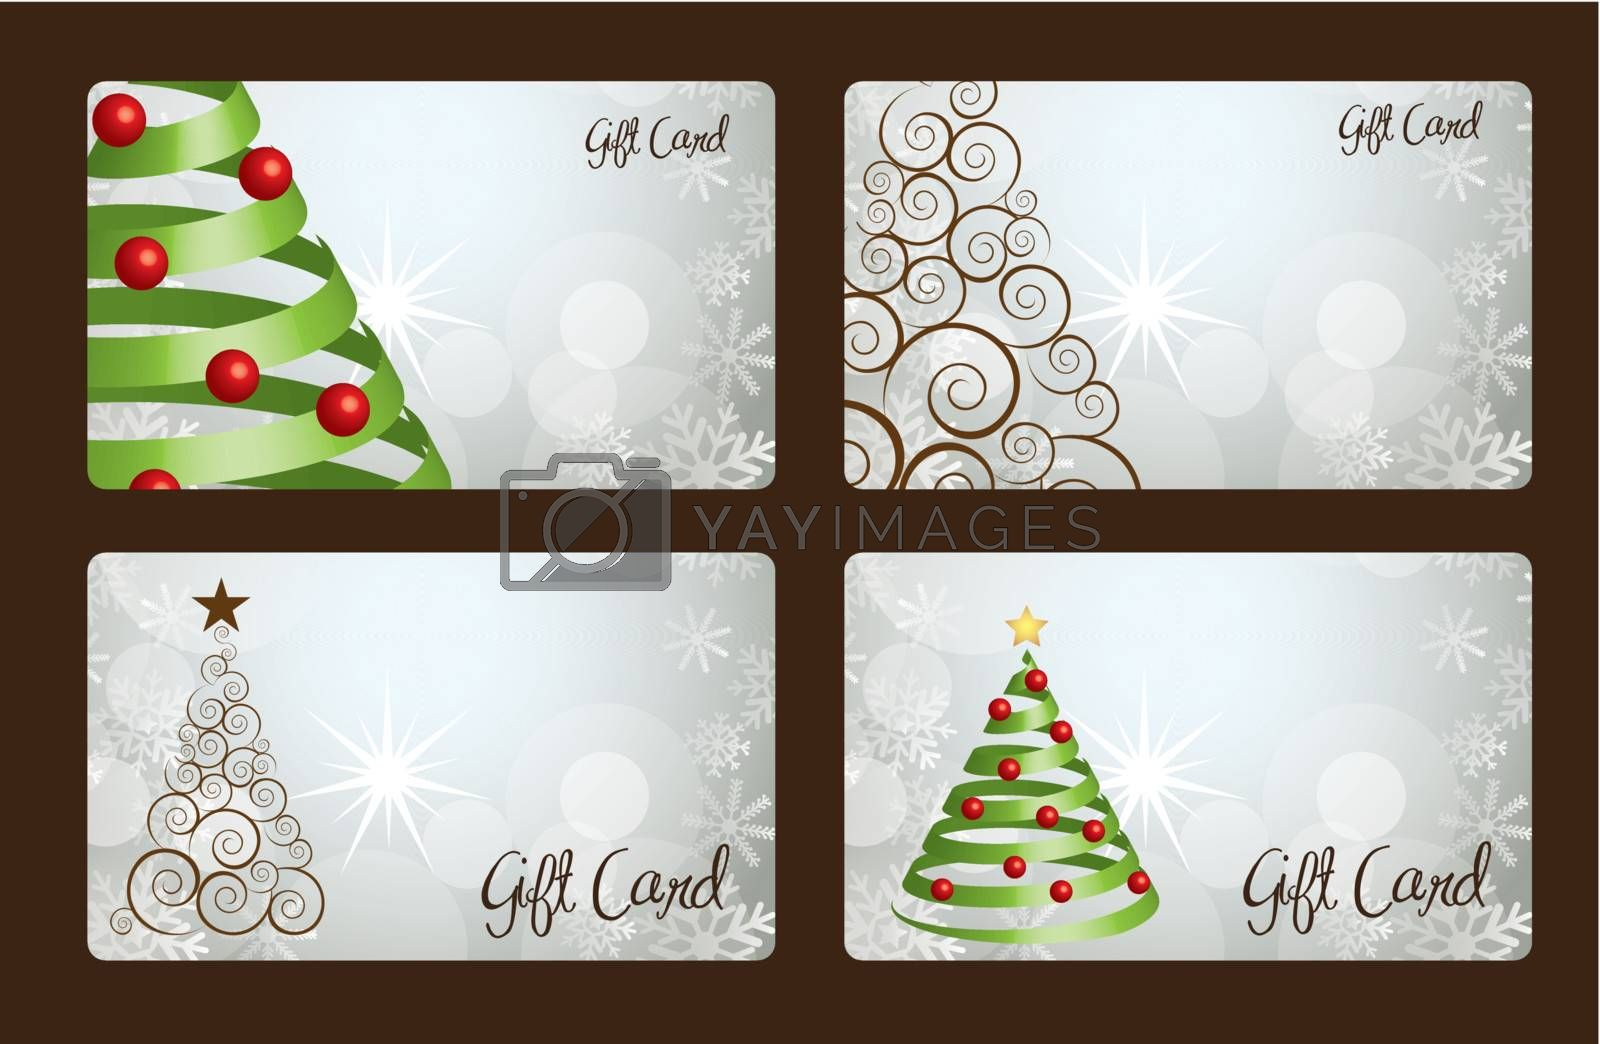 Christmas gift cards with Christmas tree vector illustration